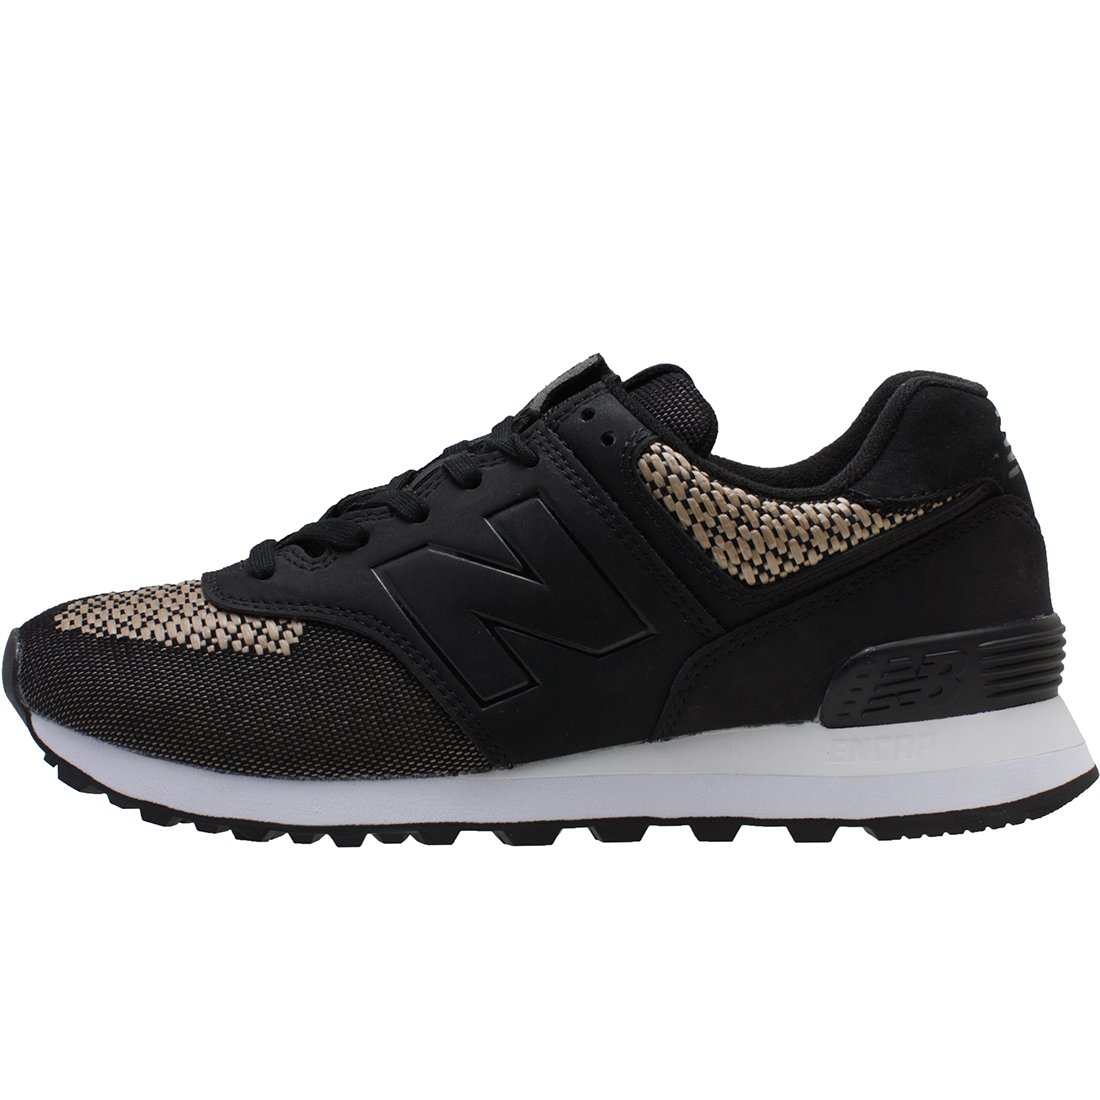 huge discount 3cd41 42d03 Details about New Balance Women's Ml574 Tech Raffia, black, Size 6.0